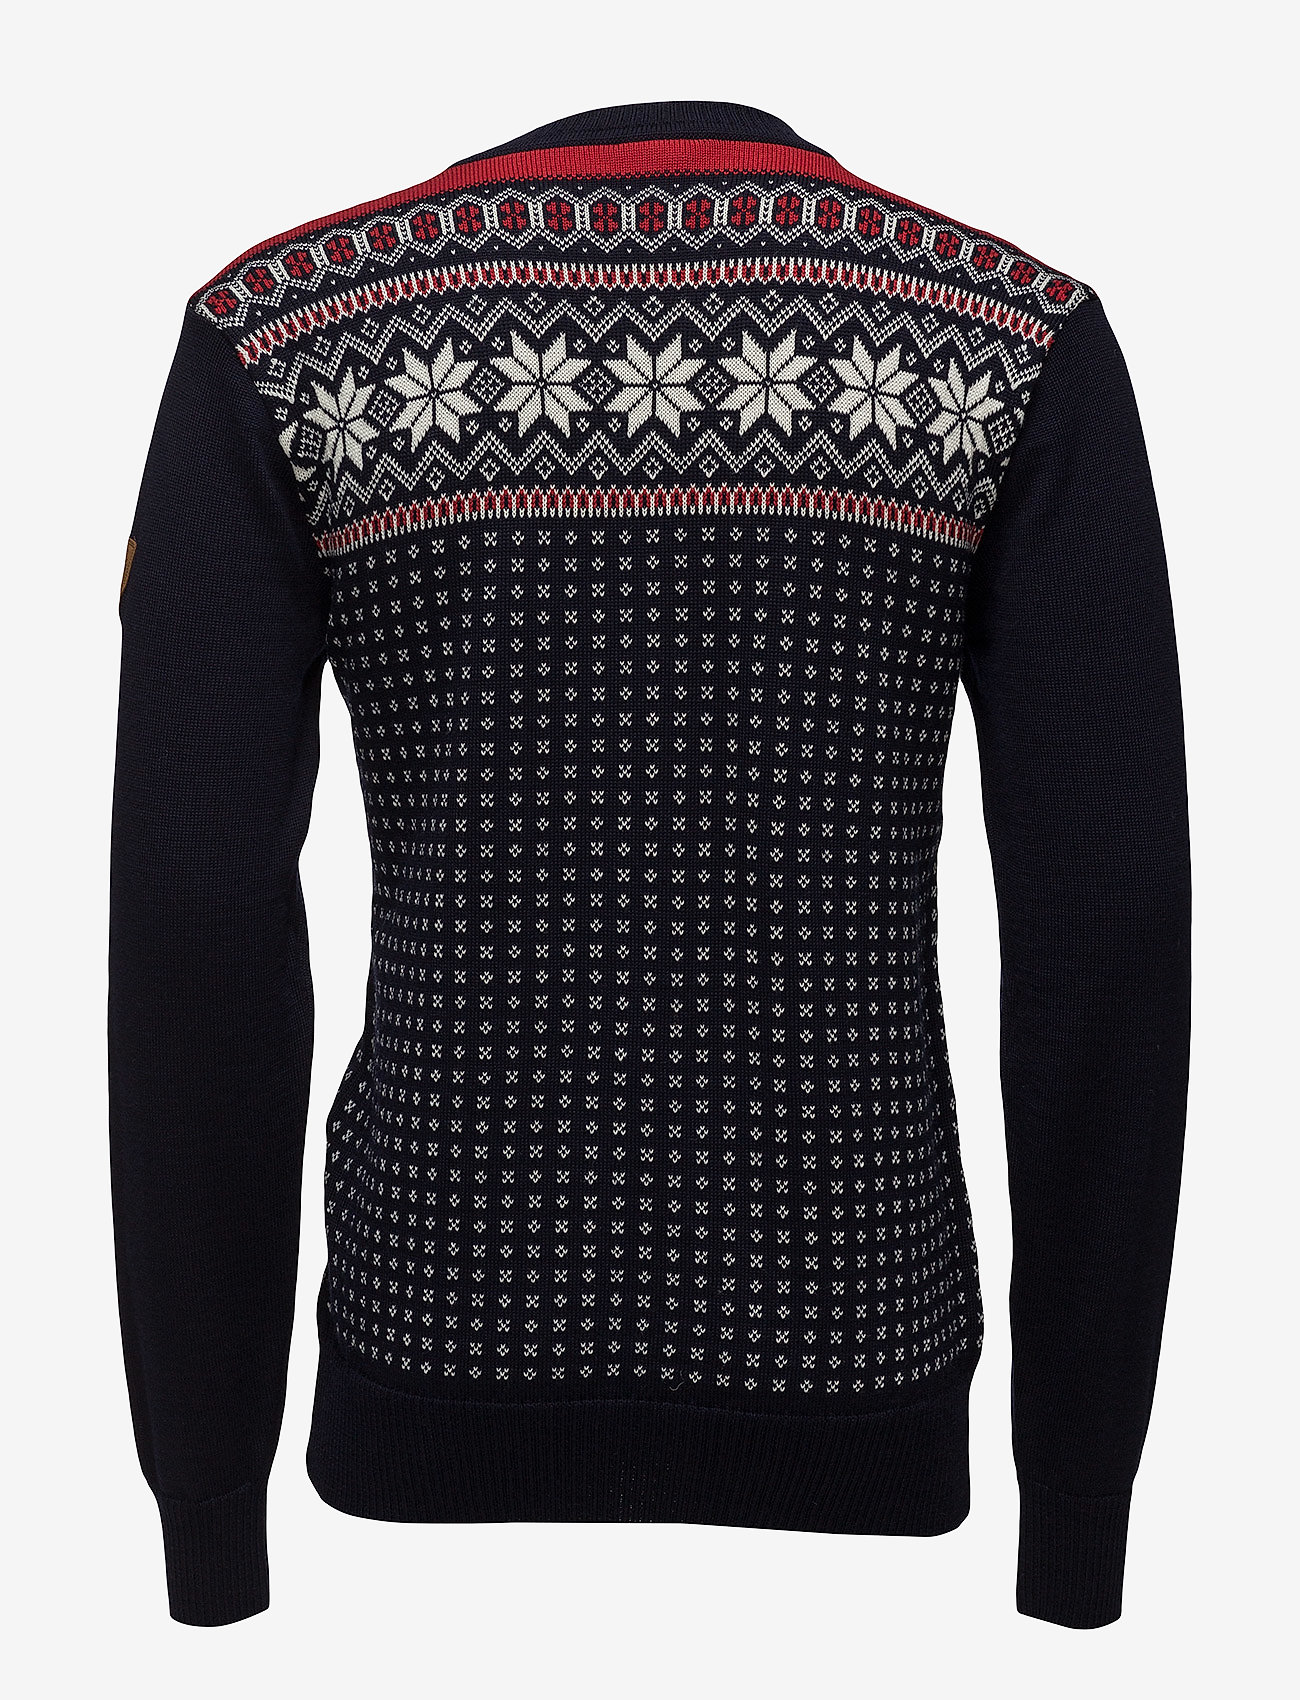 Dale of Norway Garmisch Masc Sweater - Strikkevarer NAVY/OFF WHITE/RASPBERRY - Menn Klær